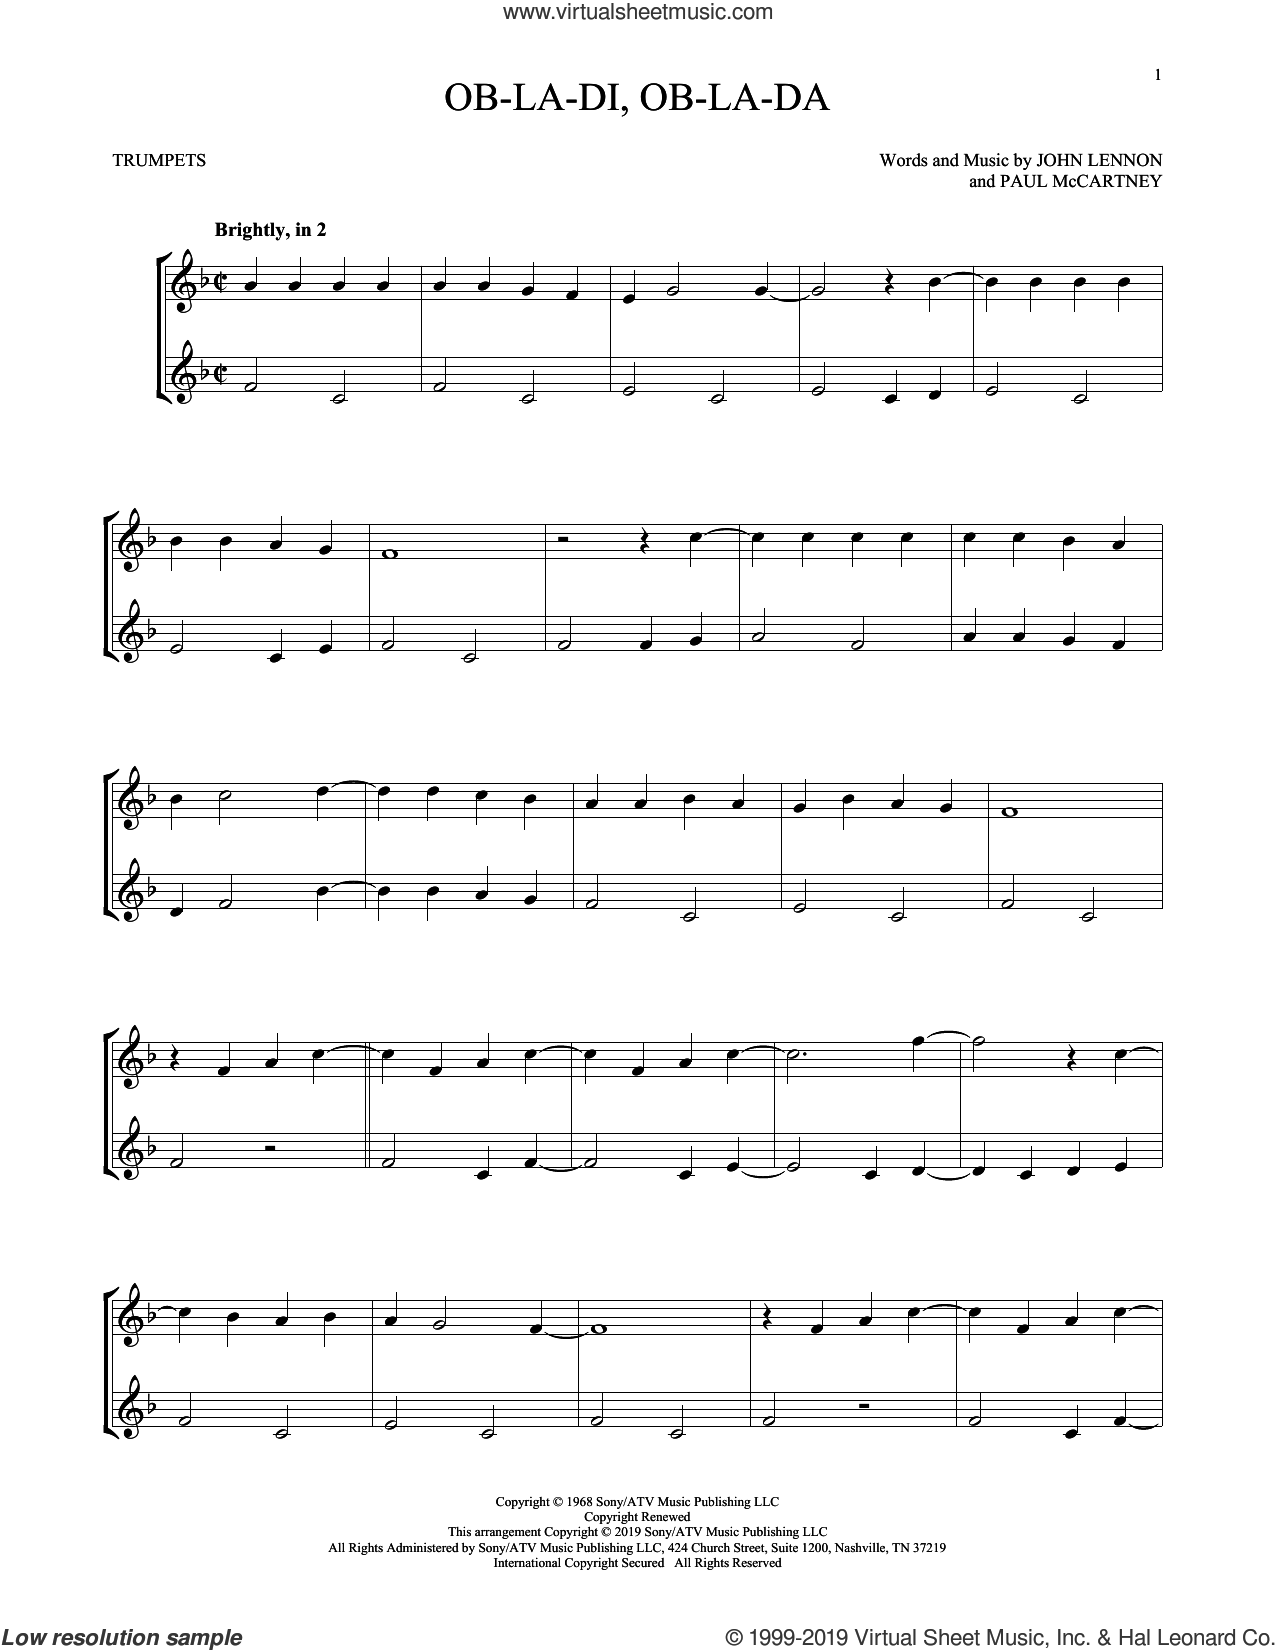 Ob-La-Di, Ob-La-Da sheet music for two trumpets (duet, duets) by The Beatles, John Lennon and Paul McCartney, intermediate skill level